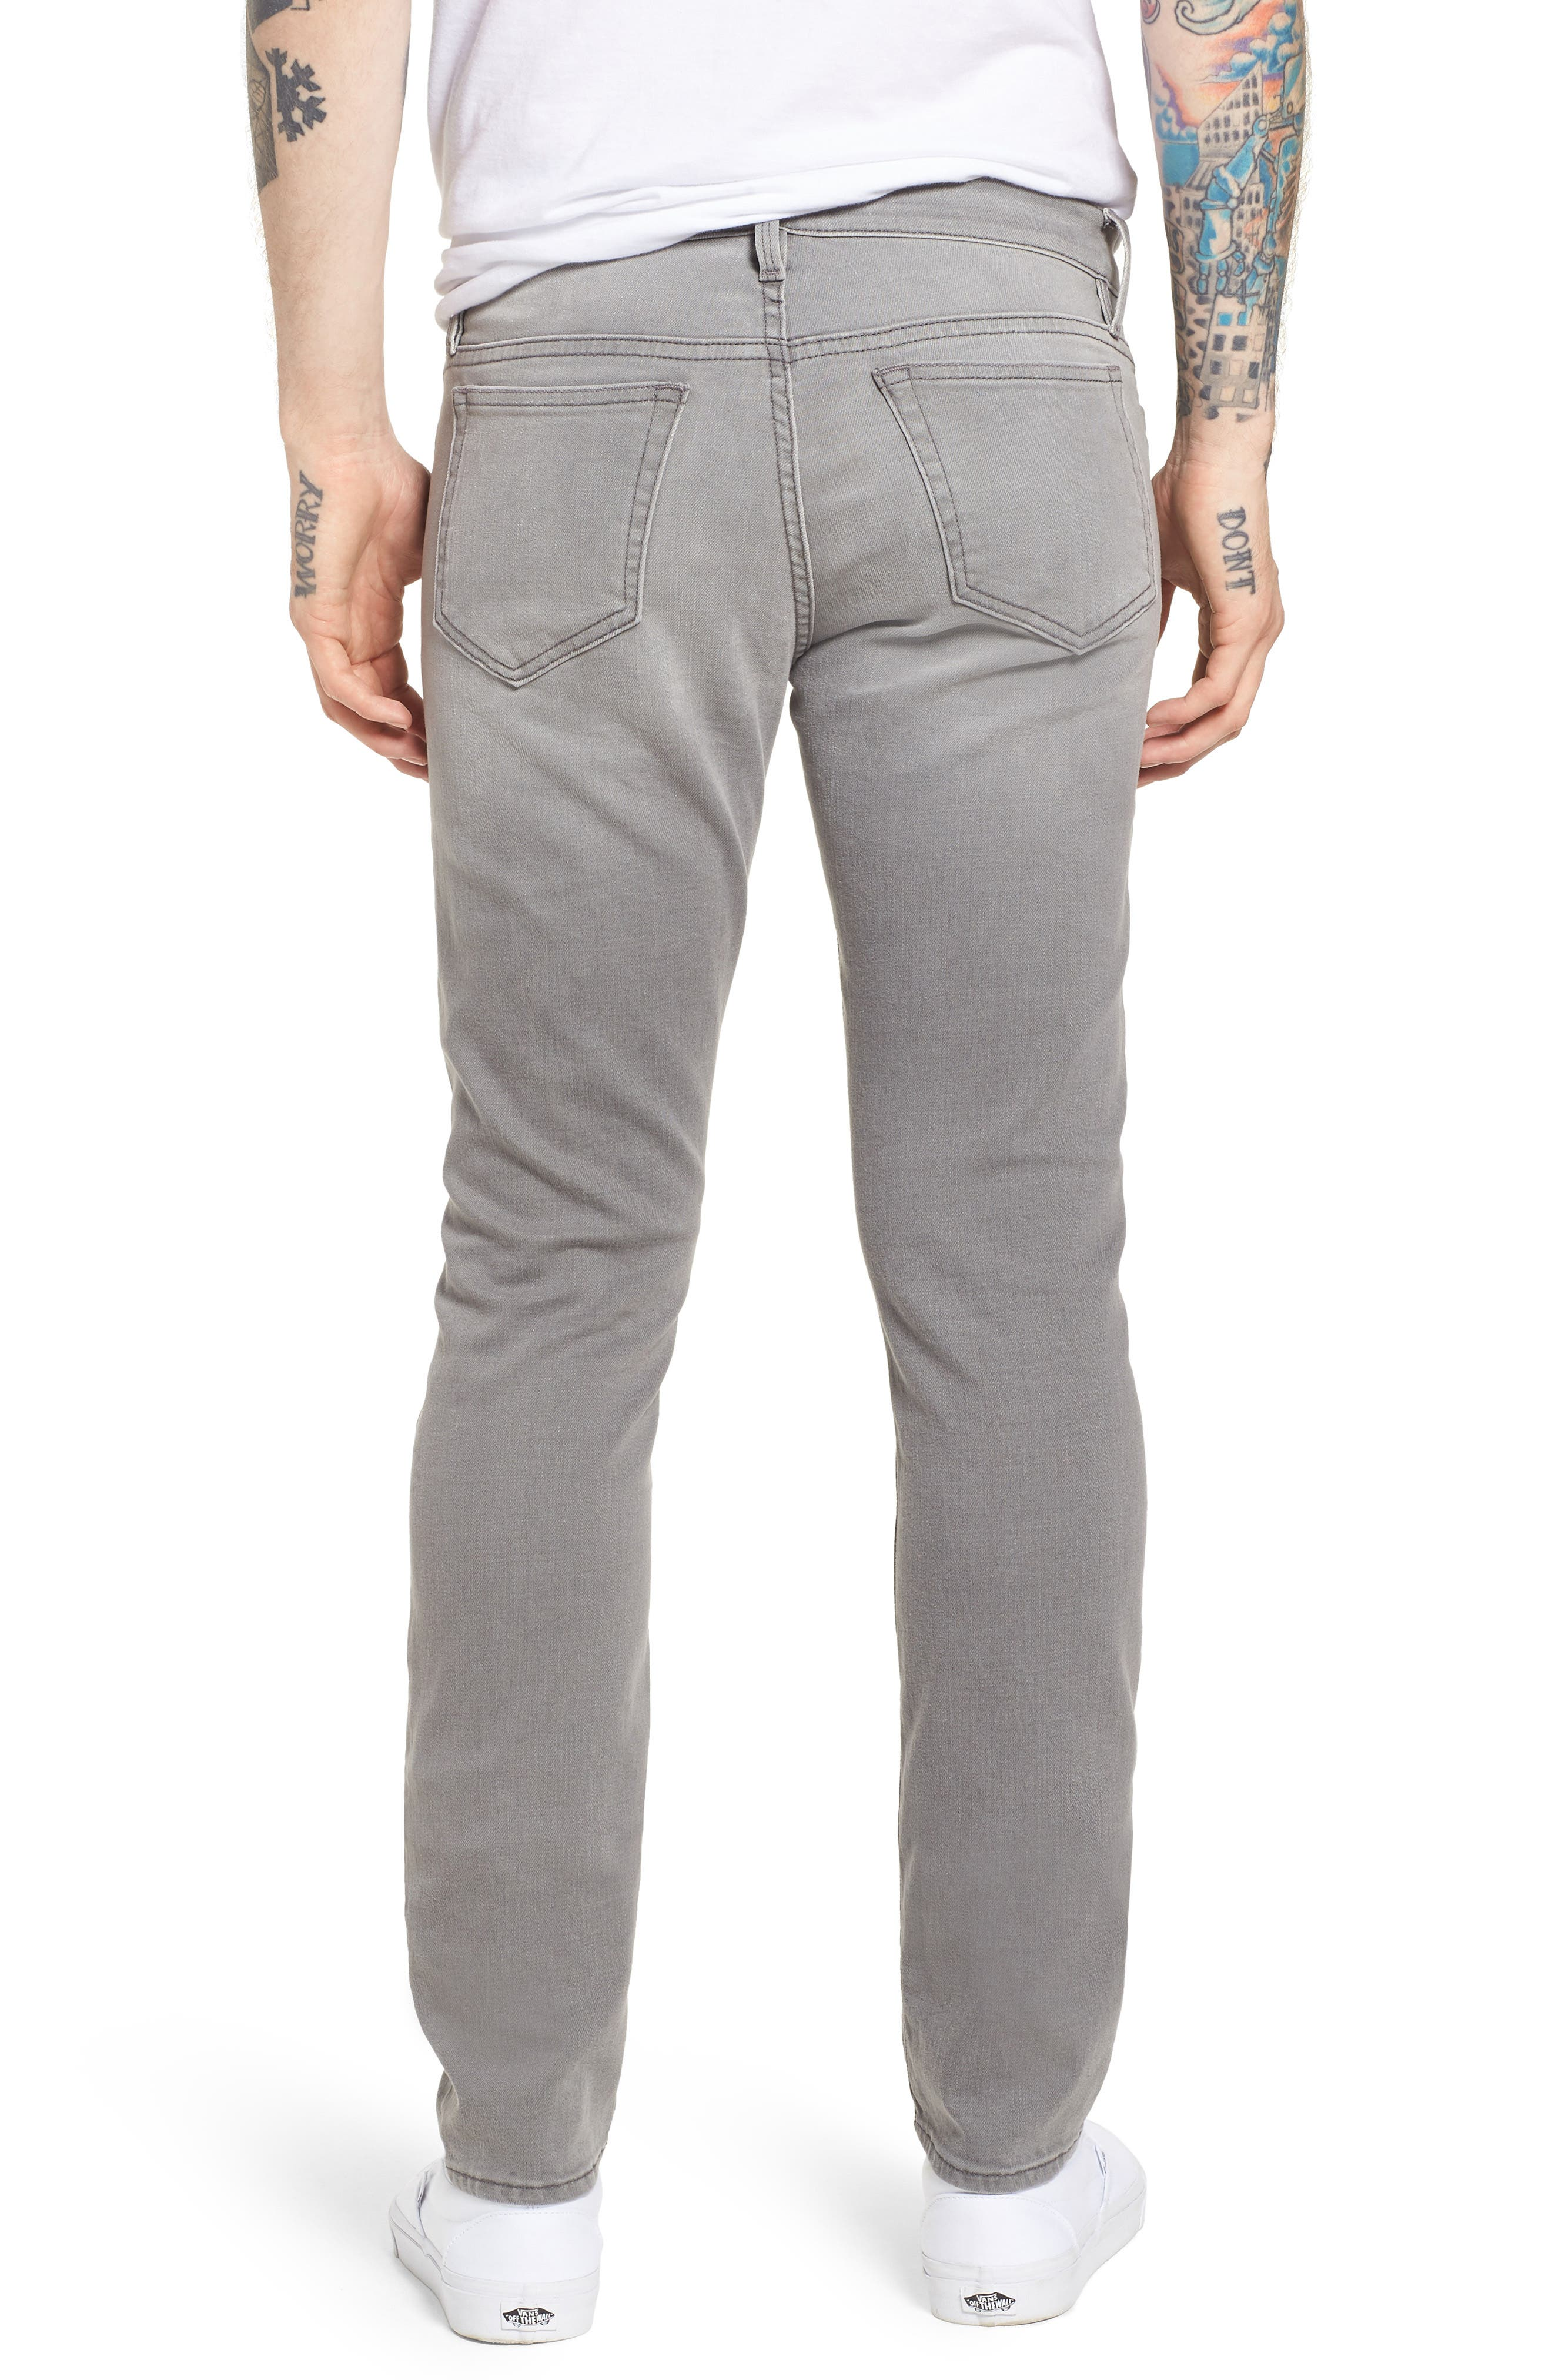 L'Homme Slim Fit Jeans,                             Alternate thumbnail 2, color,                             Bedwell